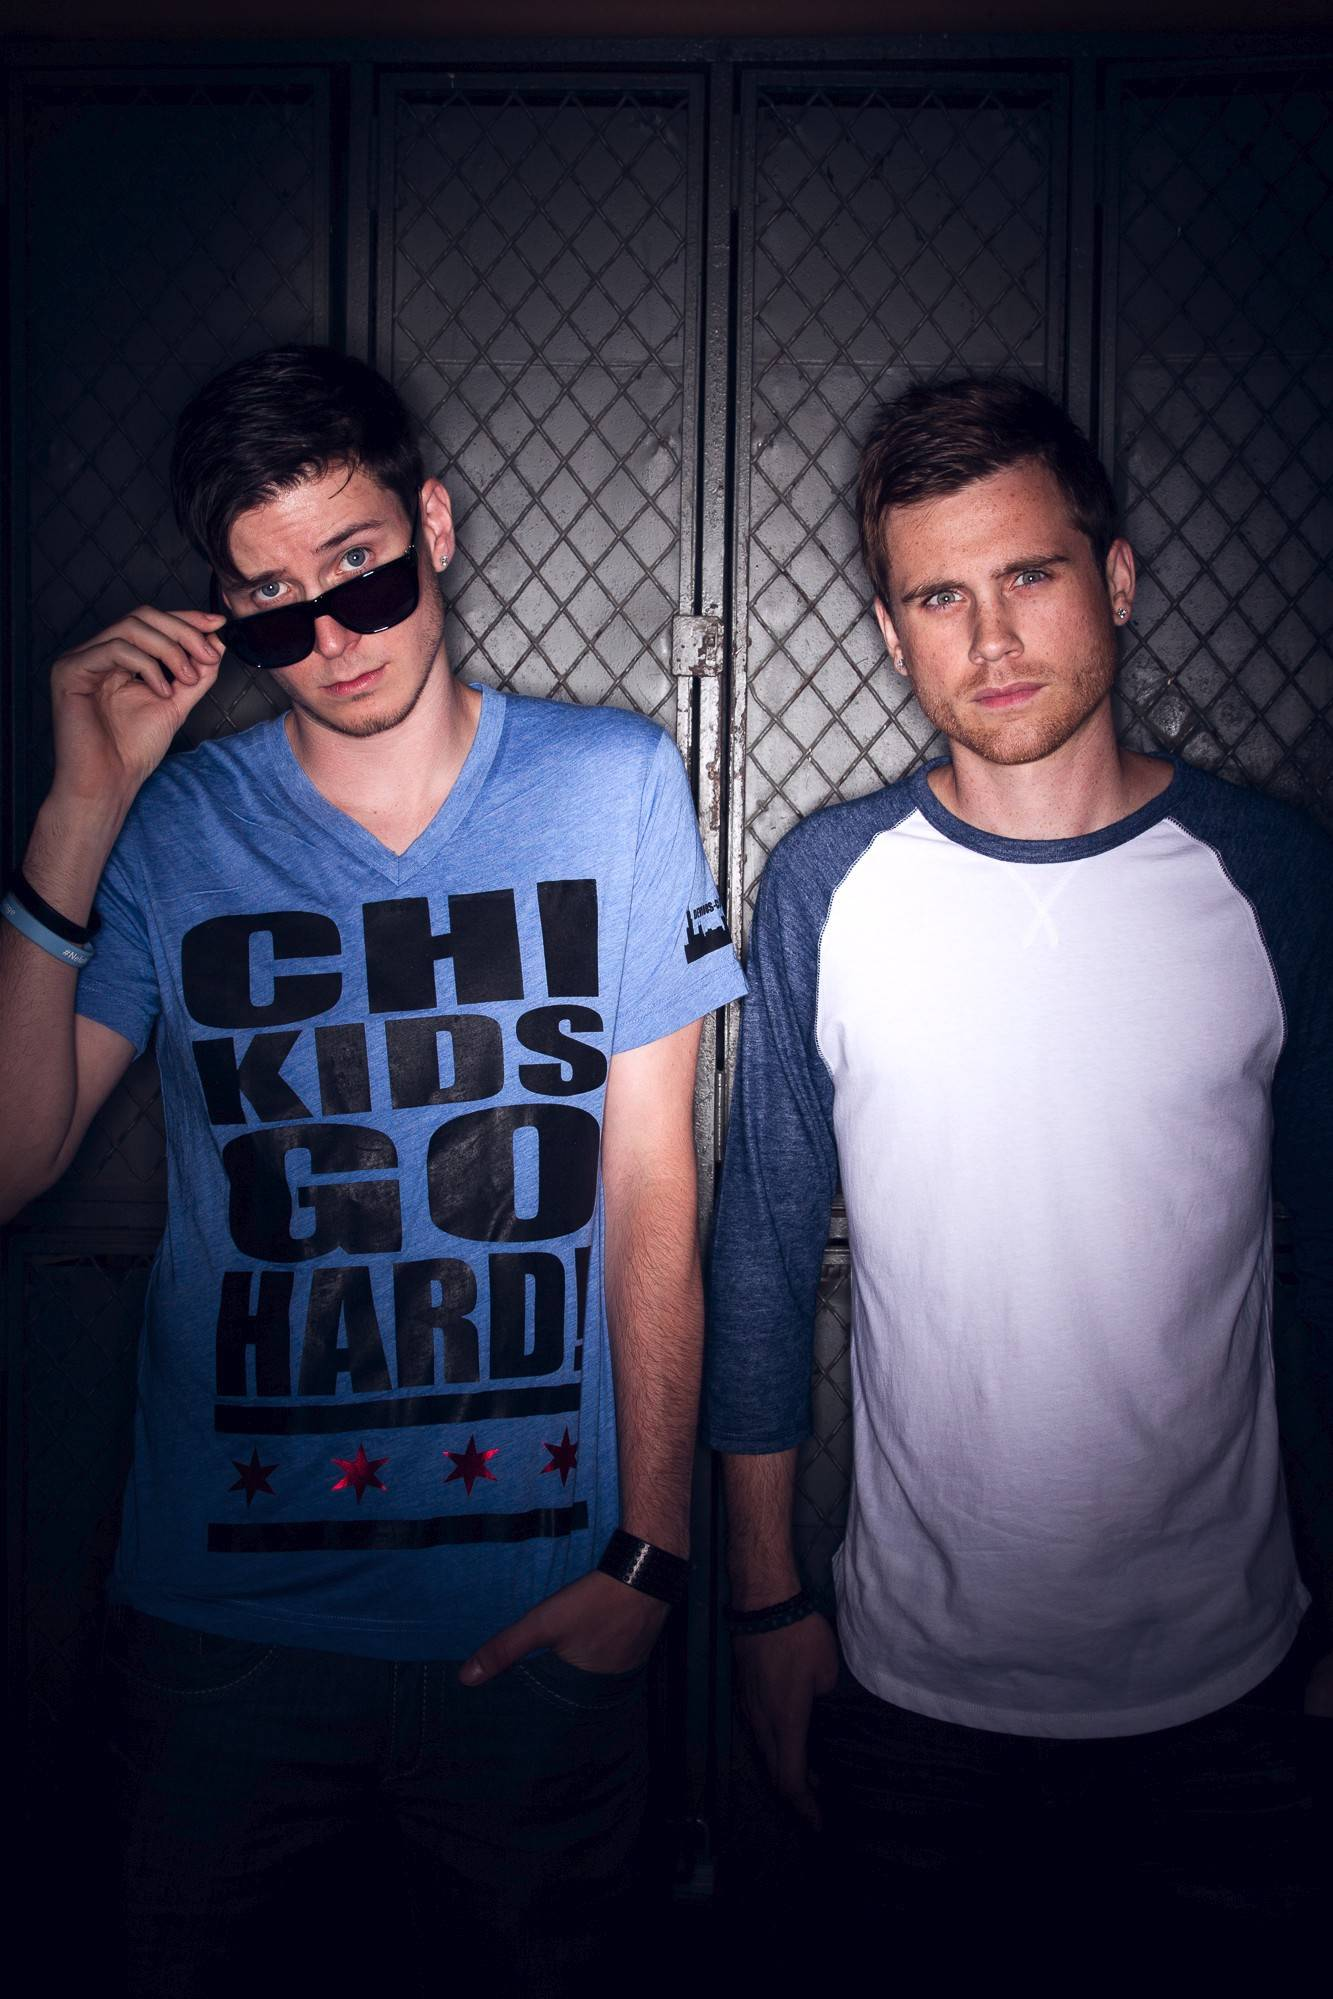 Wheaton natives Kings of Class -- DJs Bobby DeMaria and Erik Johnson -- play the Hangar Stage at 2:45 p.m. Saturday for Spring Awakening at Soldier Field.